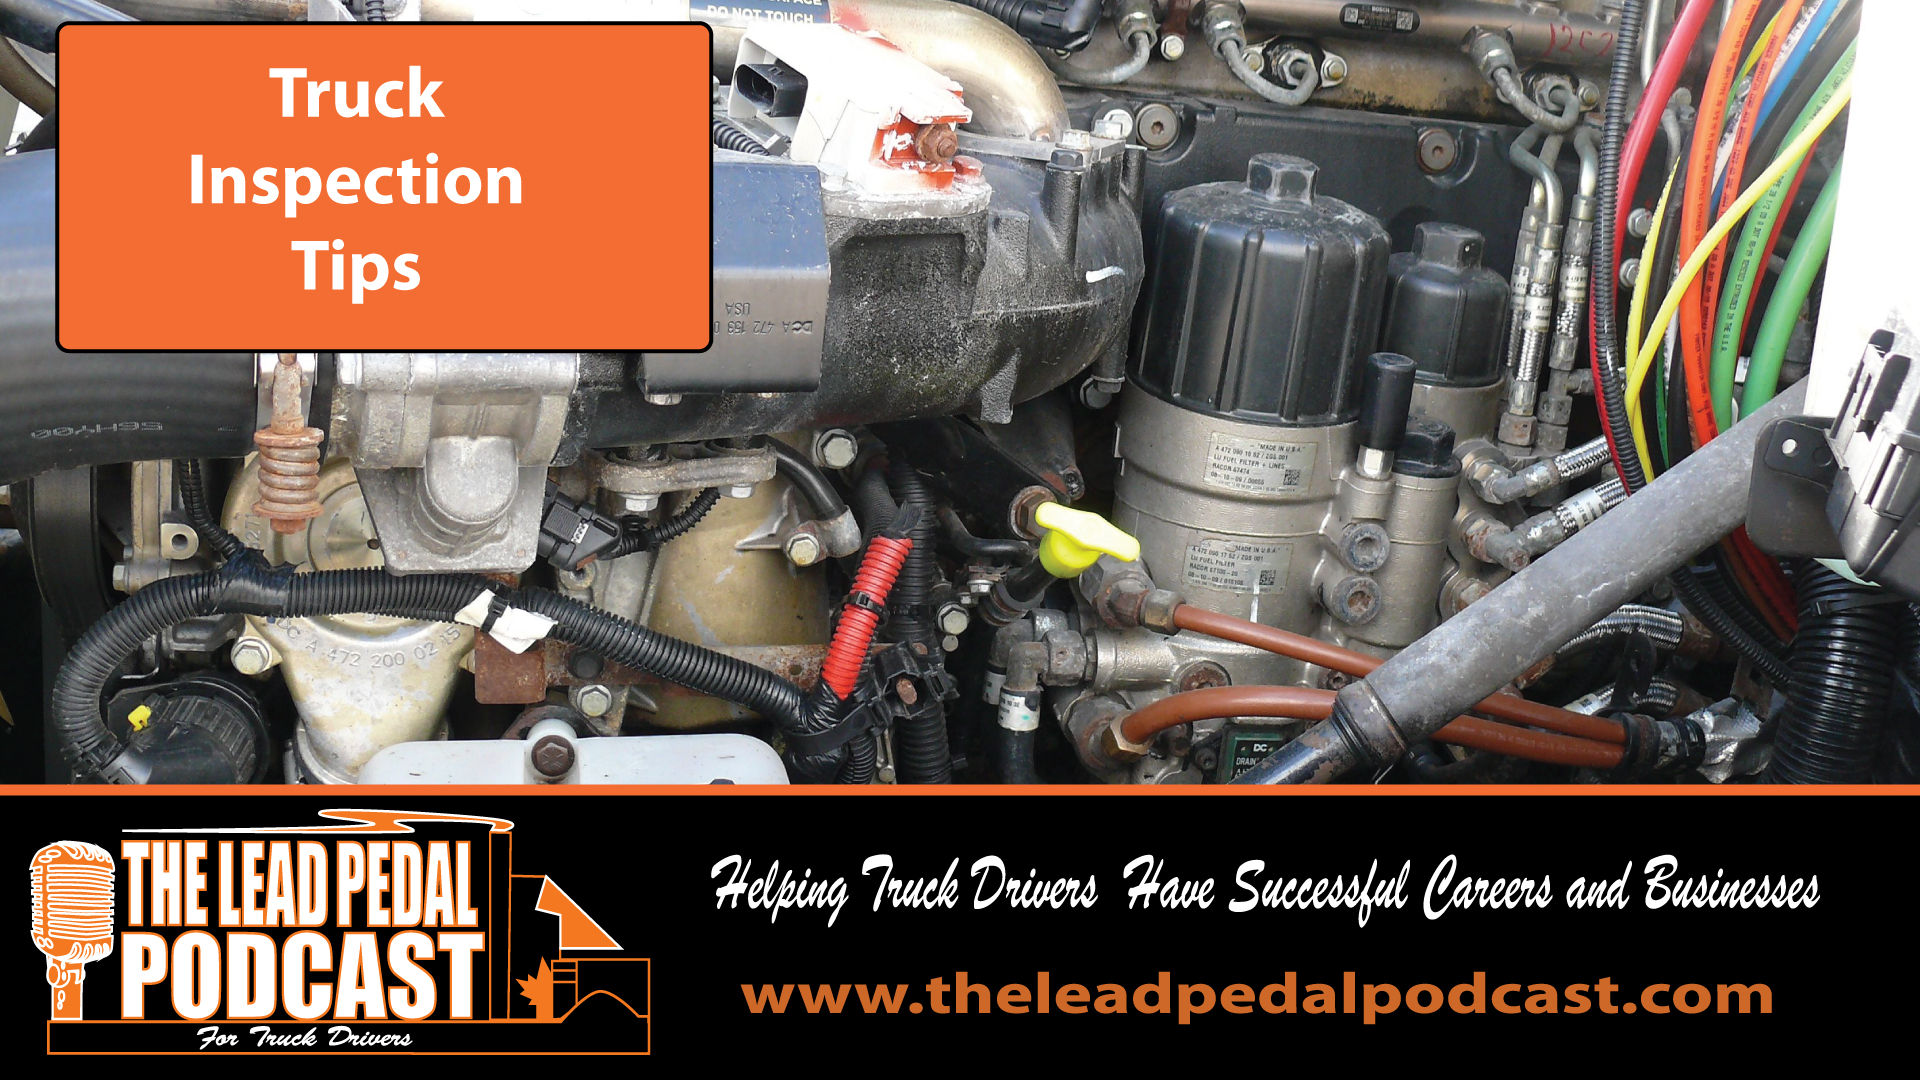 LP623 Inspection Tips for Truckers